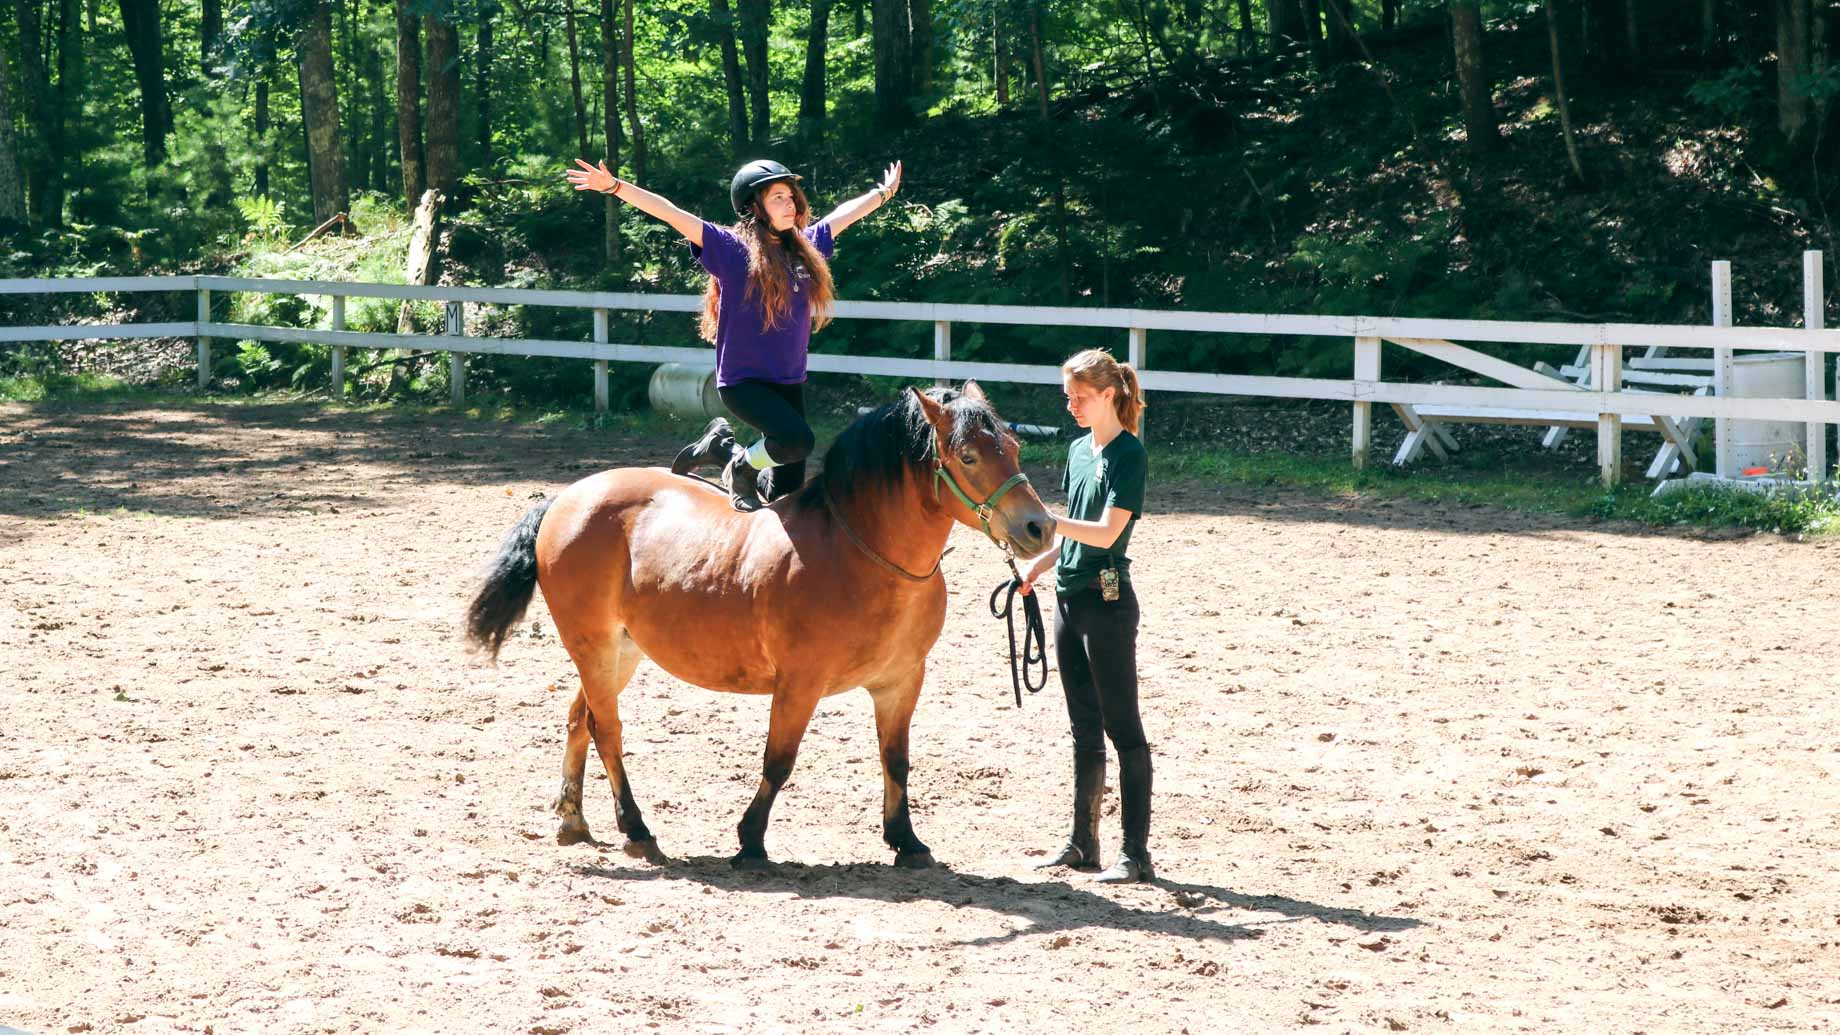 Girl kneels on back of horse with arms out